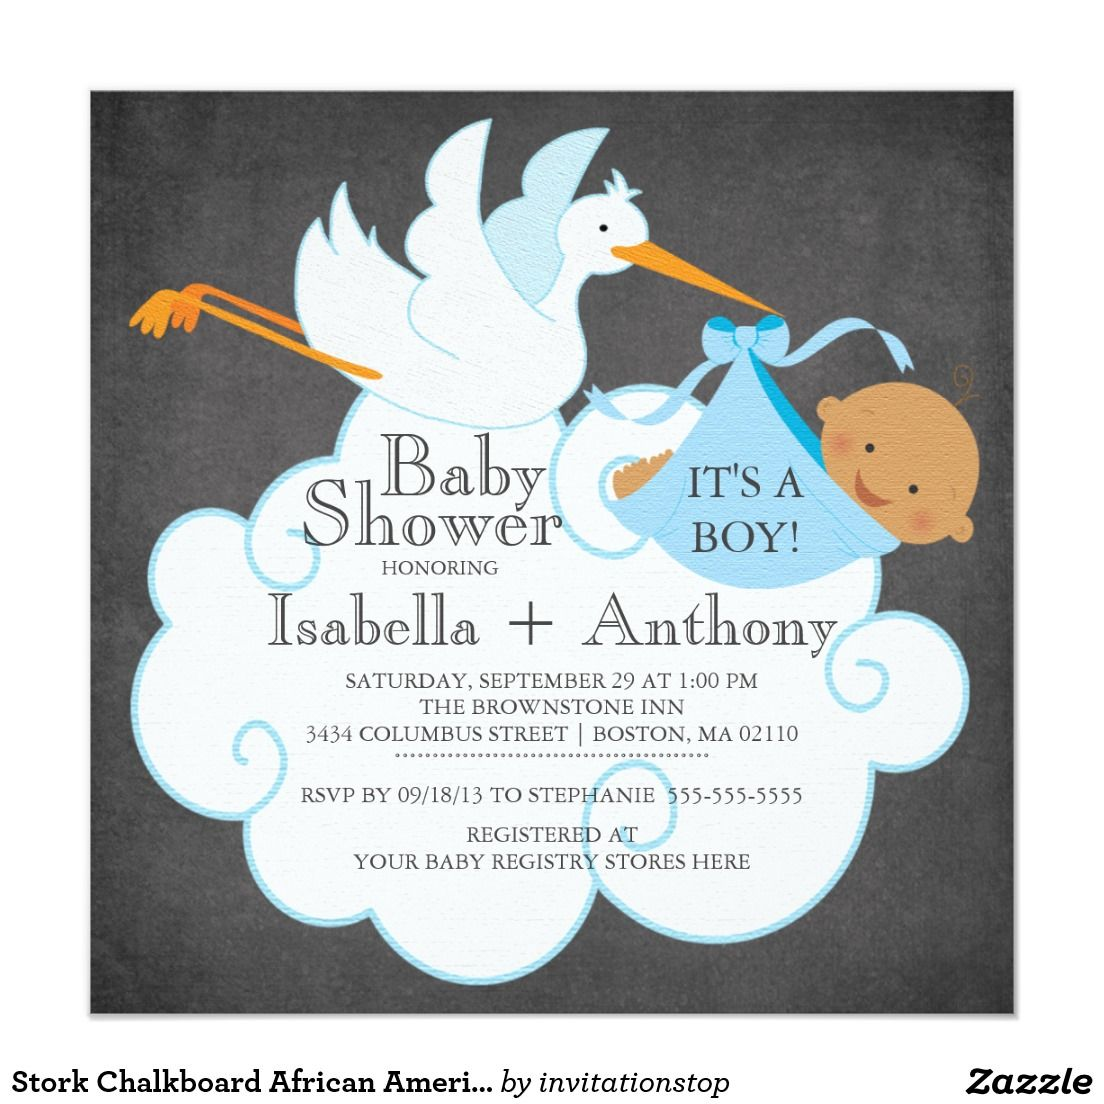 Stork Chalkboard African American Boy Baby Shower 5.25x5.25 Square Paper Invitation Card